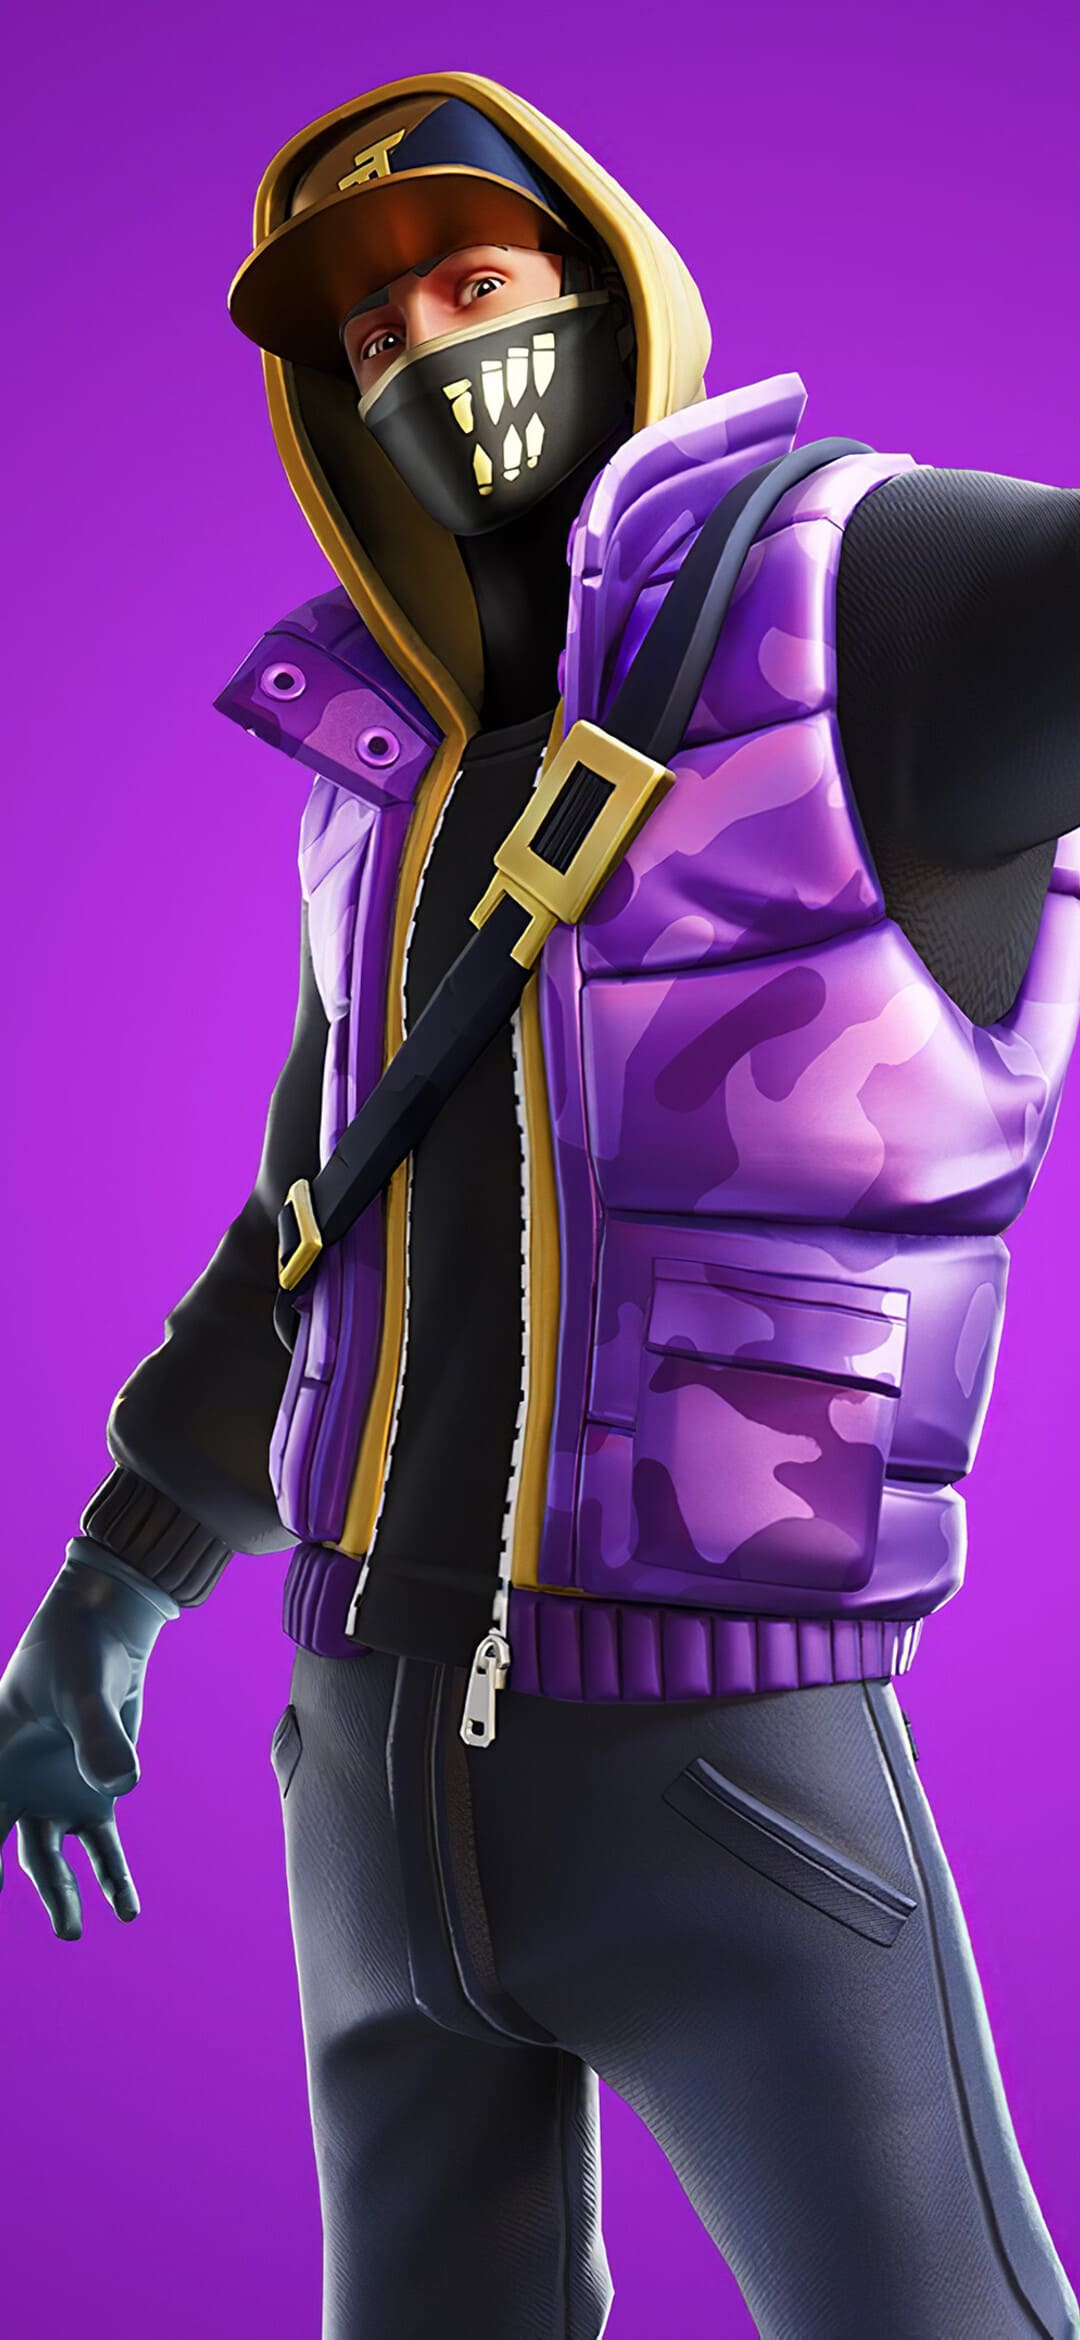 Fortnite Iphone Wallpapers Top 4k Fortnite Iphone Backgrounds 65 Hd